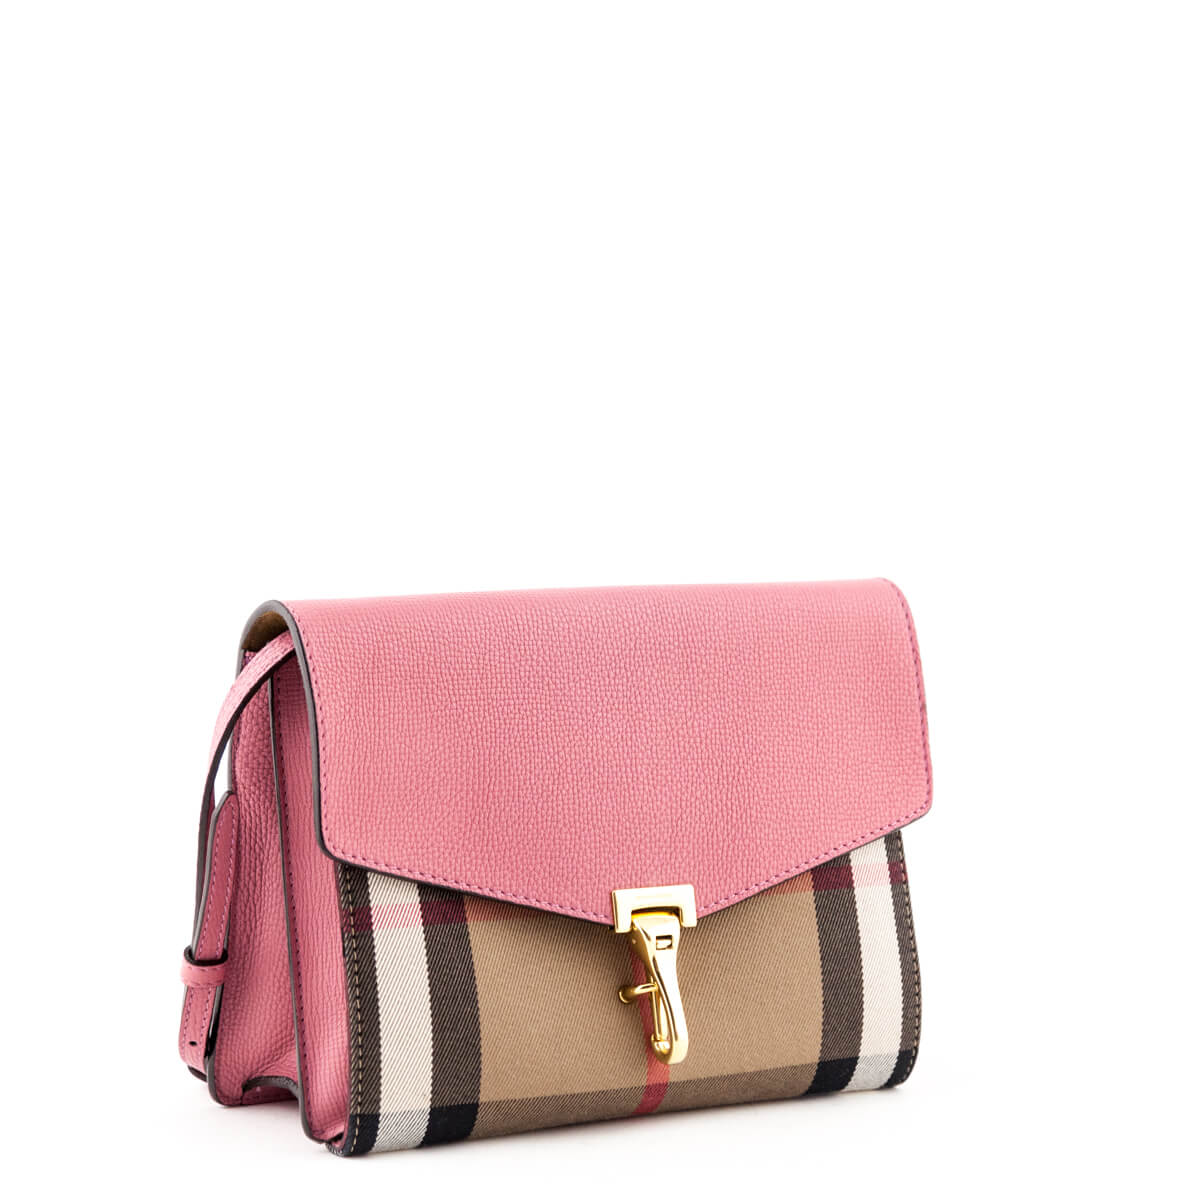 c3896bbcb0a3 ... Burberry Pink Calfskin and House Check Small Crossbody Bag - LOVE that  BAG - Preowned Authentic ...